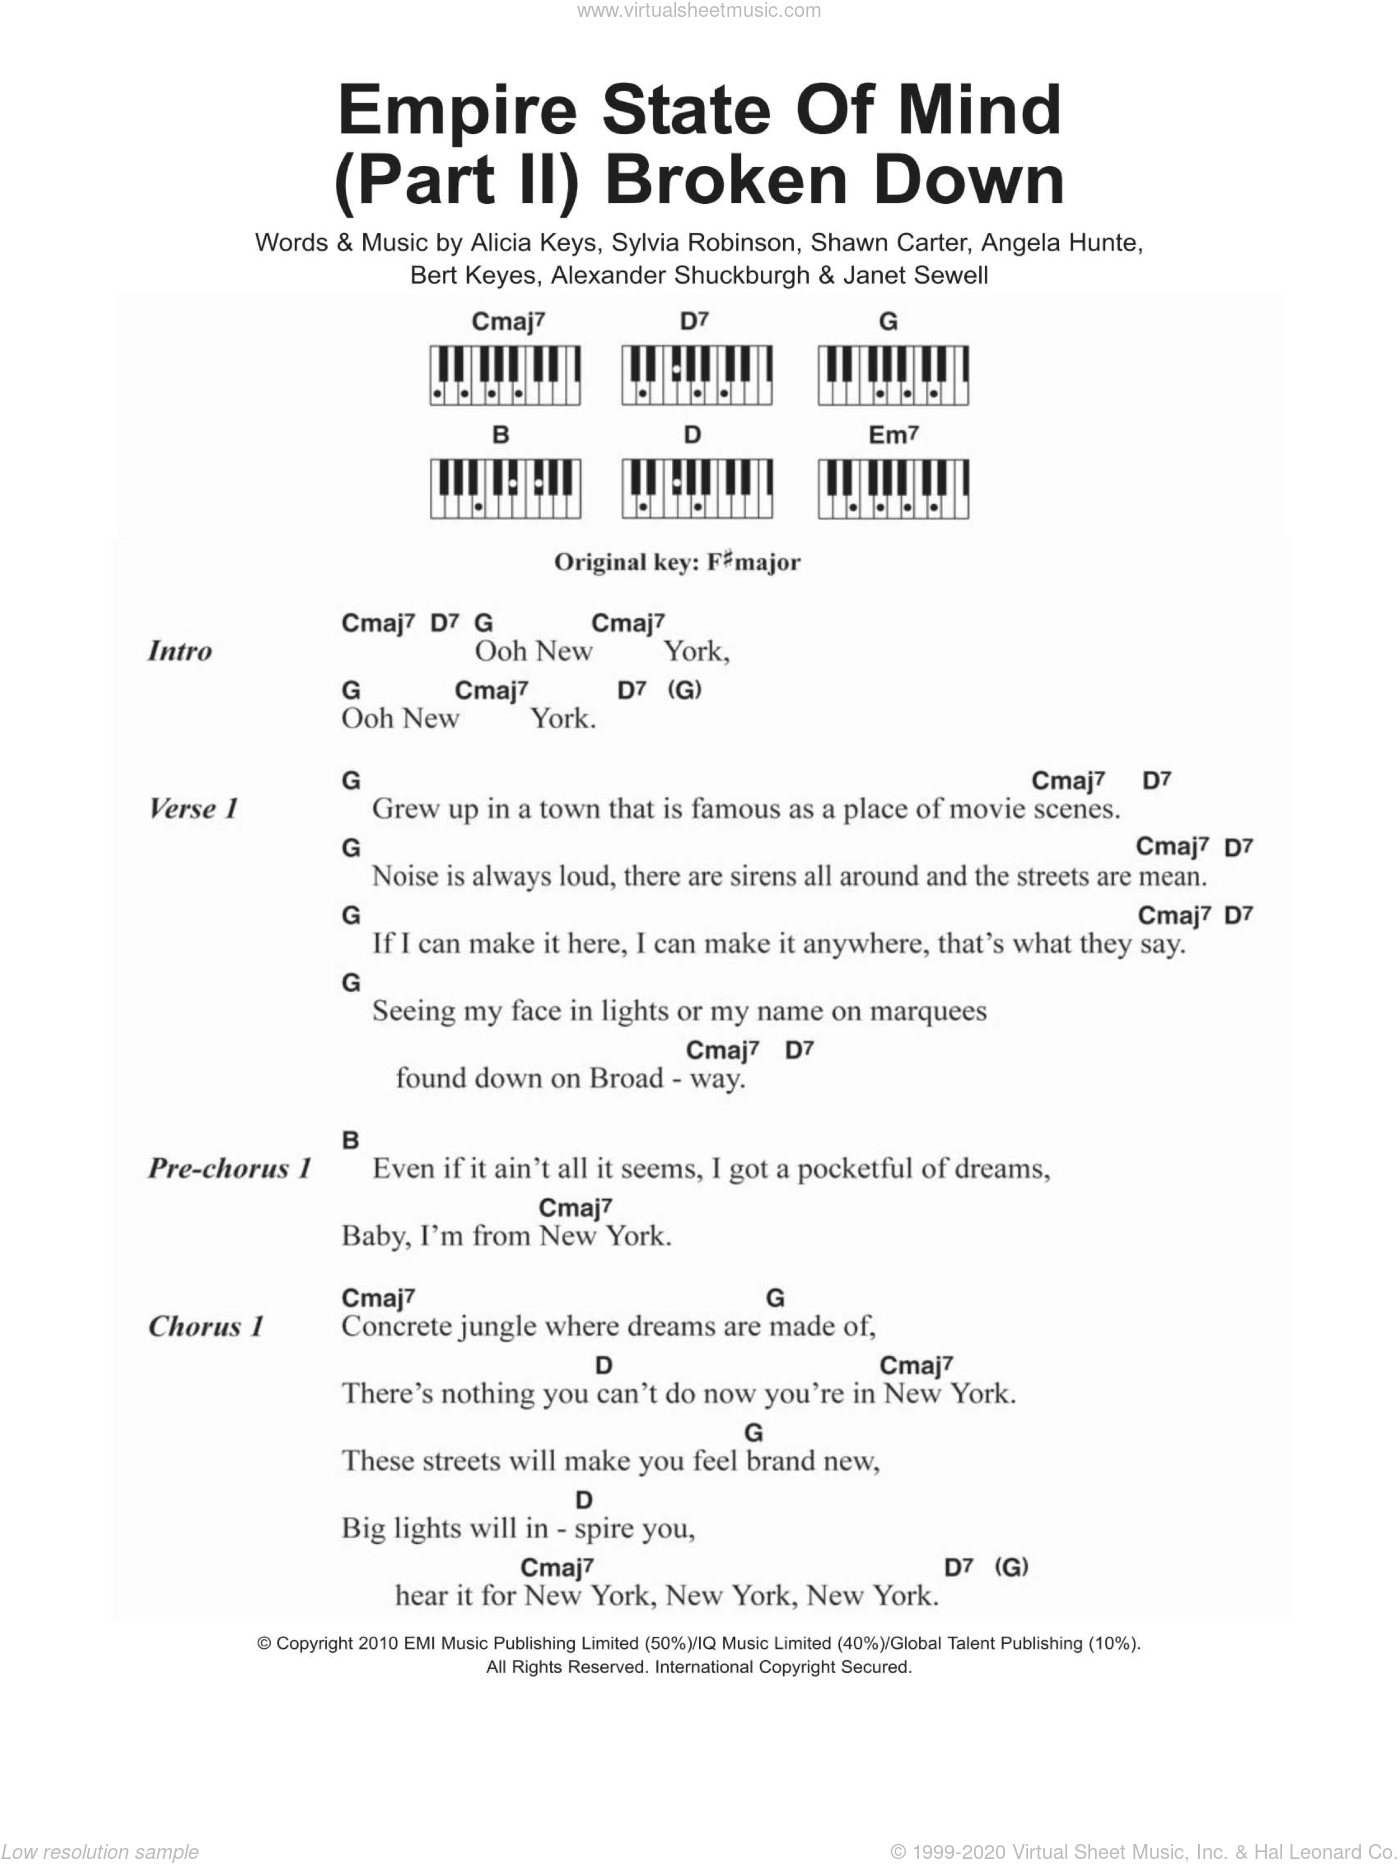 Keys - Empire State Of Mind (Part II) Broken Down sheet music for piano  solo (chords, lyrics, melody)